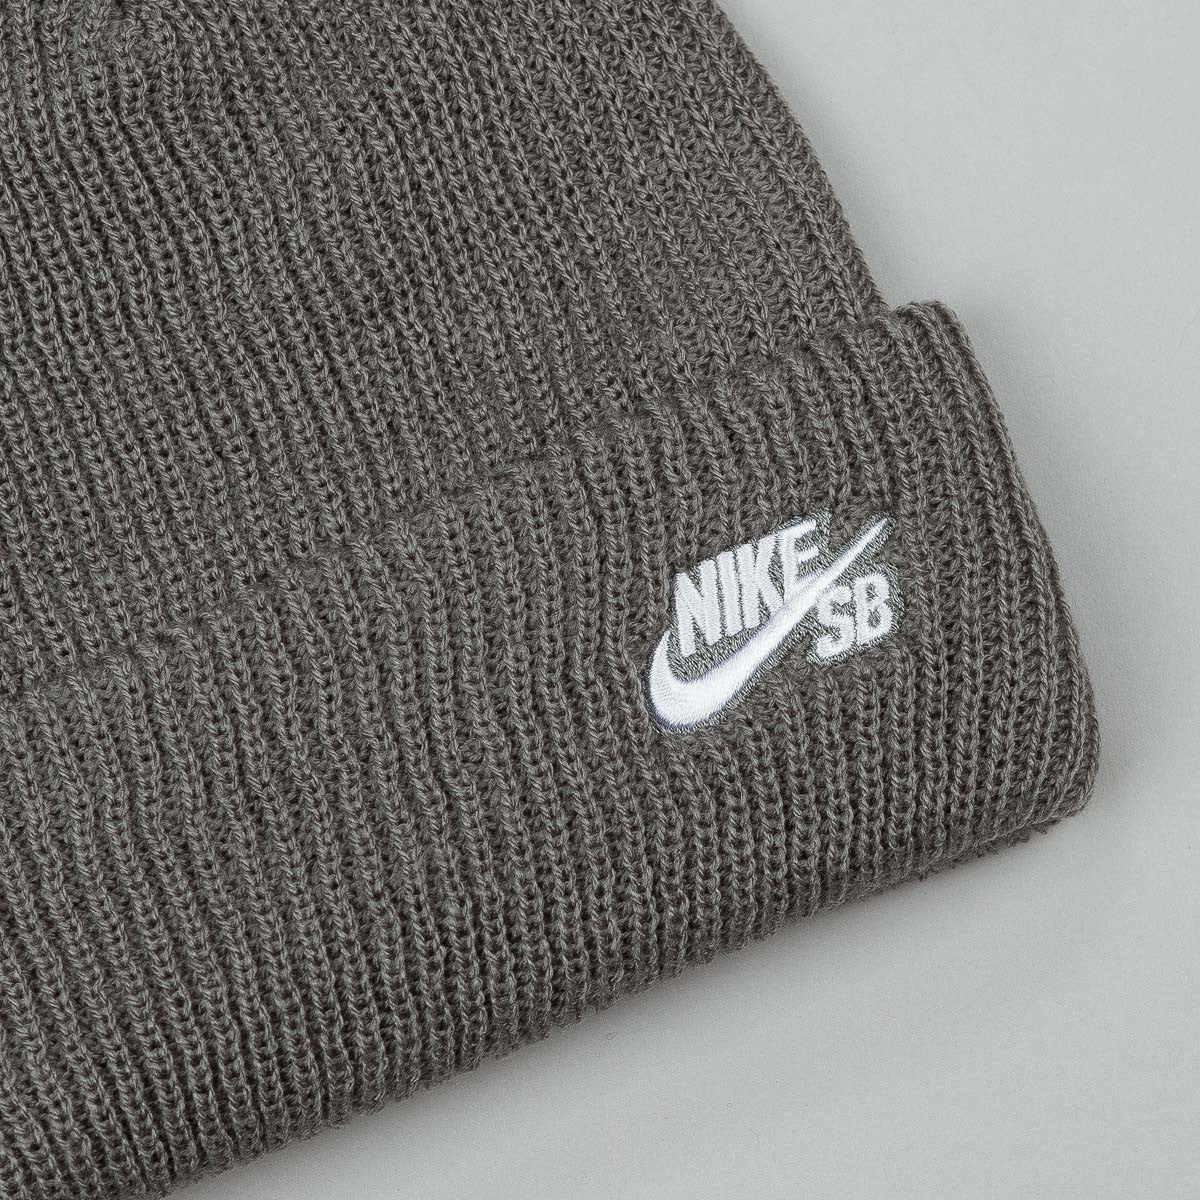 Nike SB Fisherman Beanie - Tumbled Grey / White